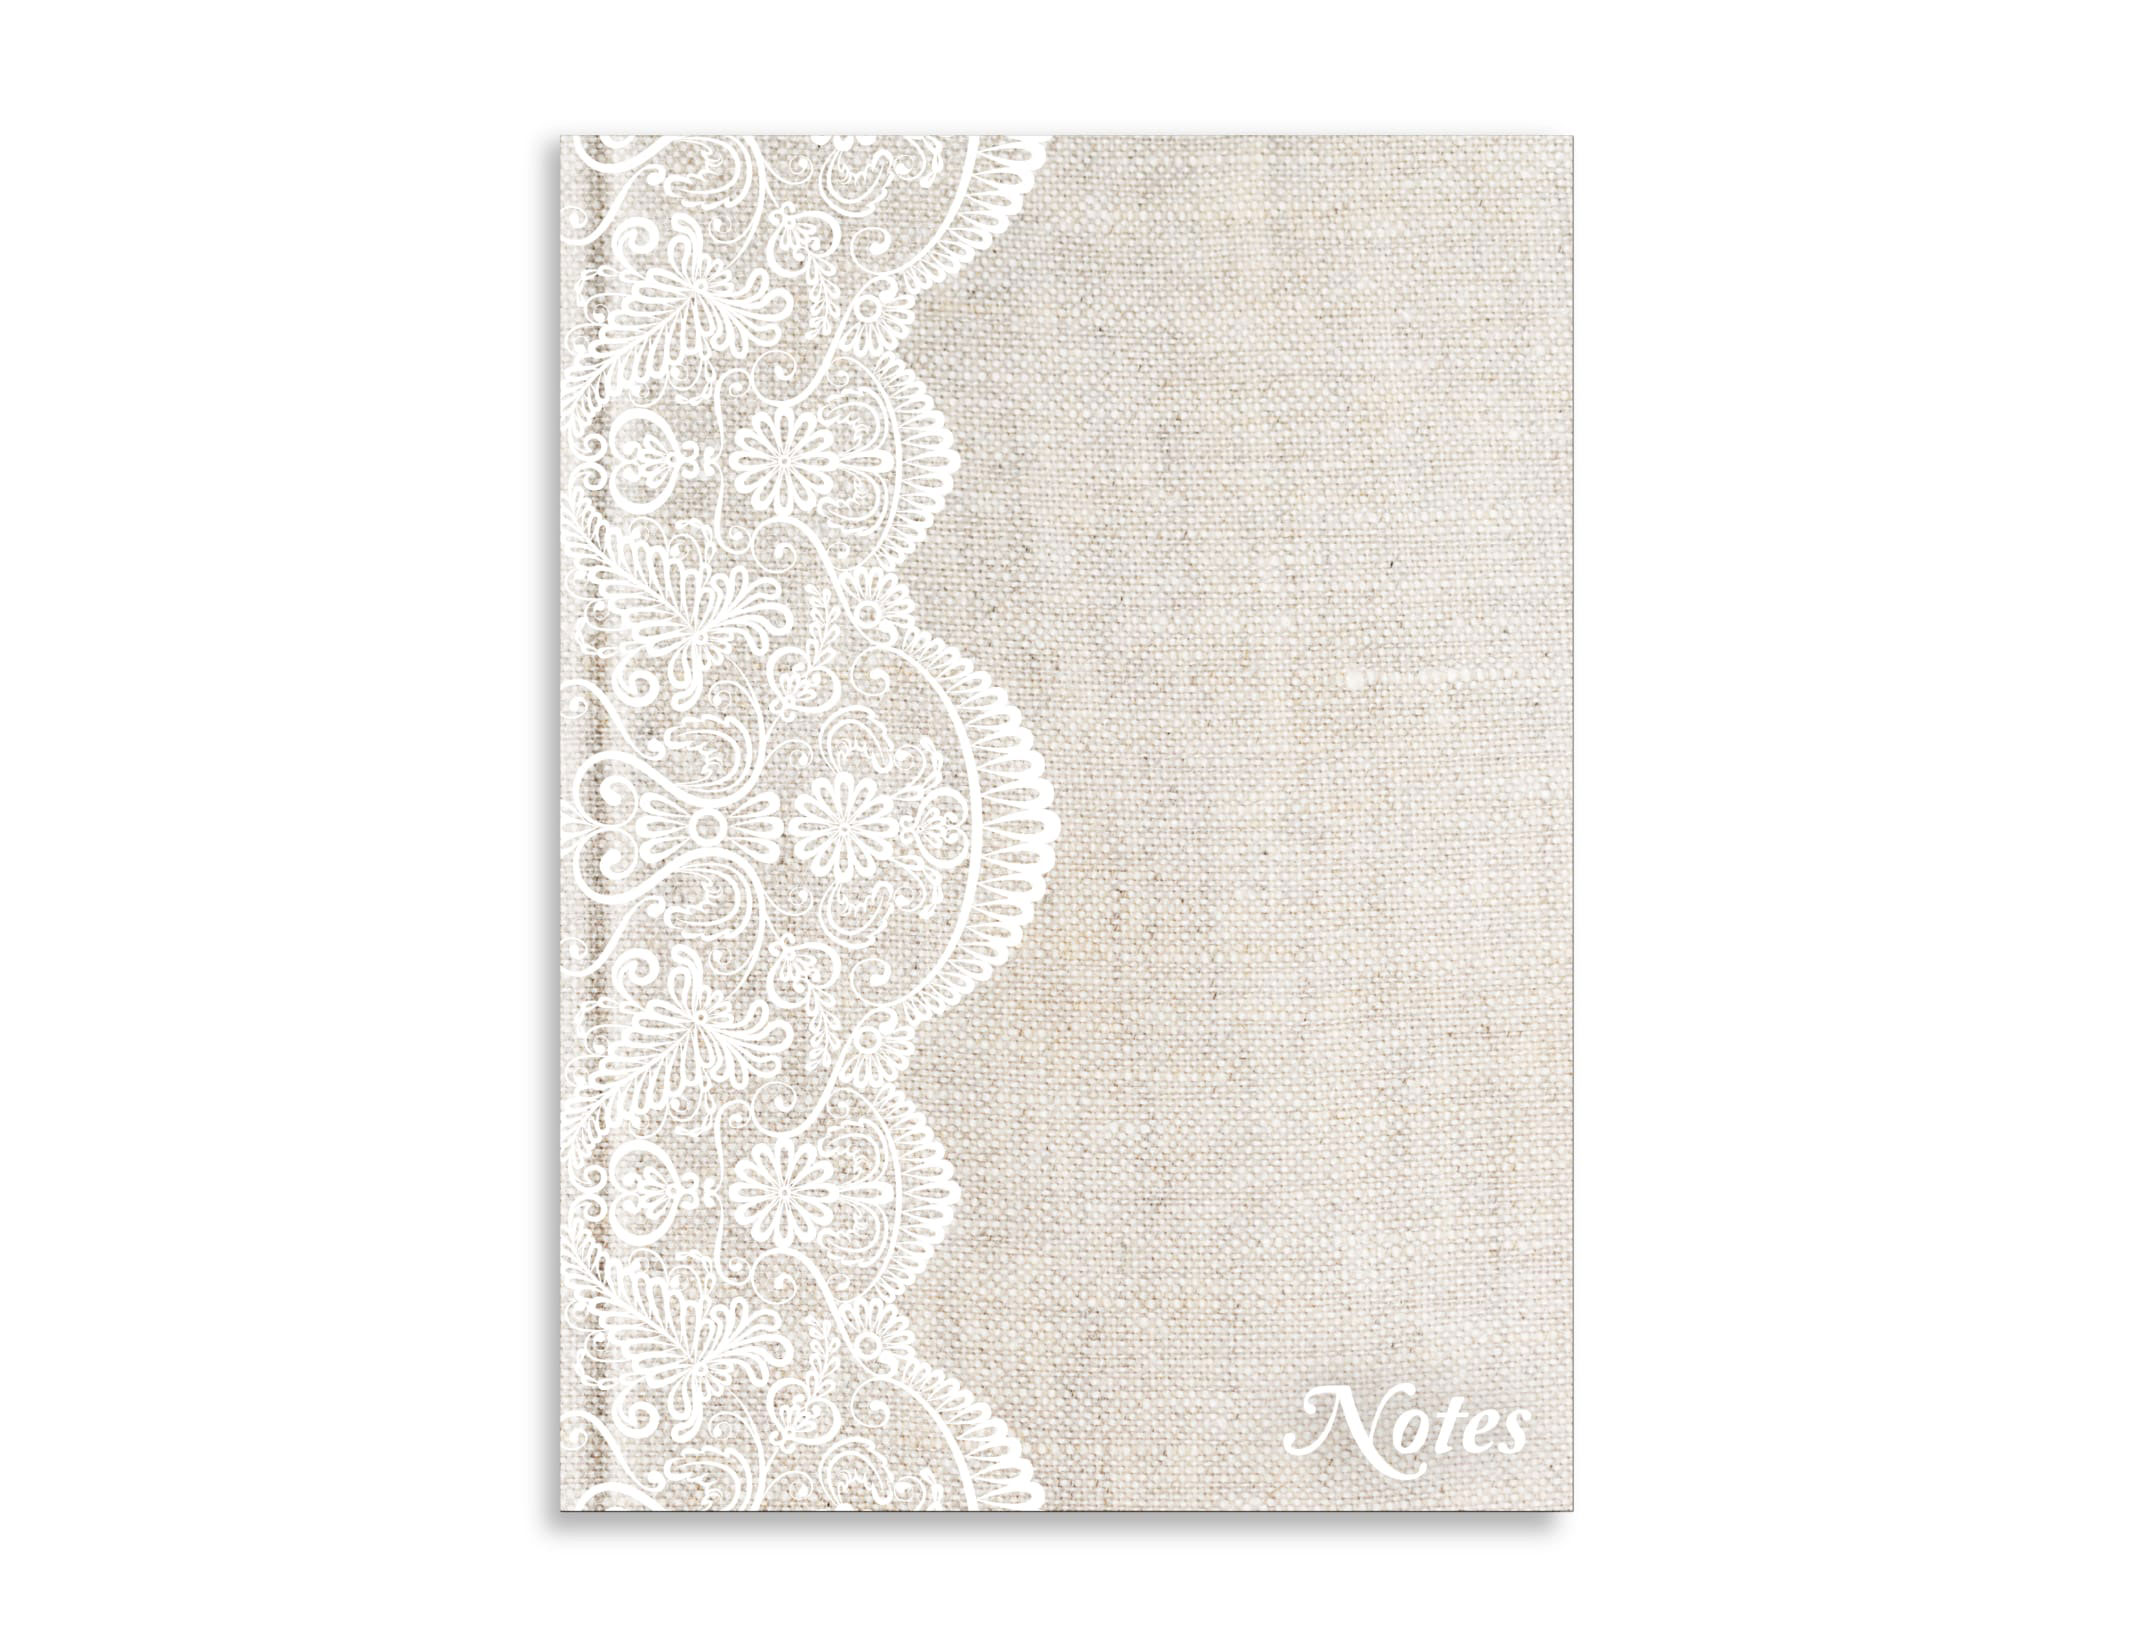 Belvedere Beige Lace Linen Notebook 7X9.5 In